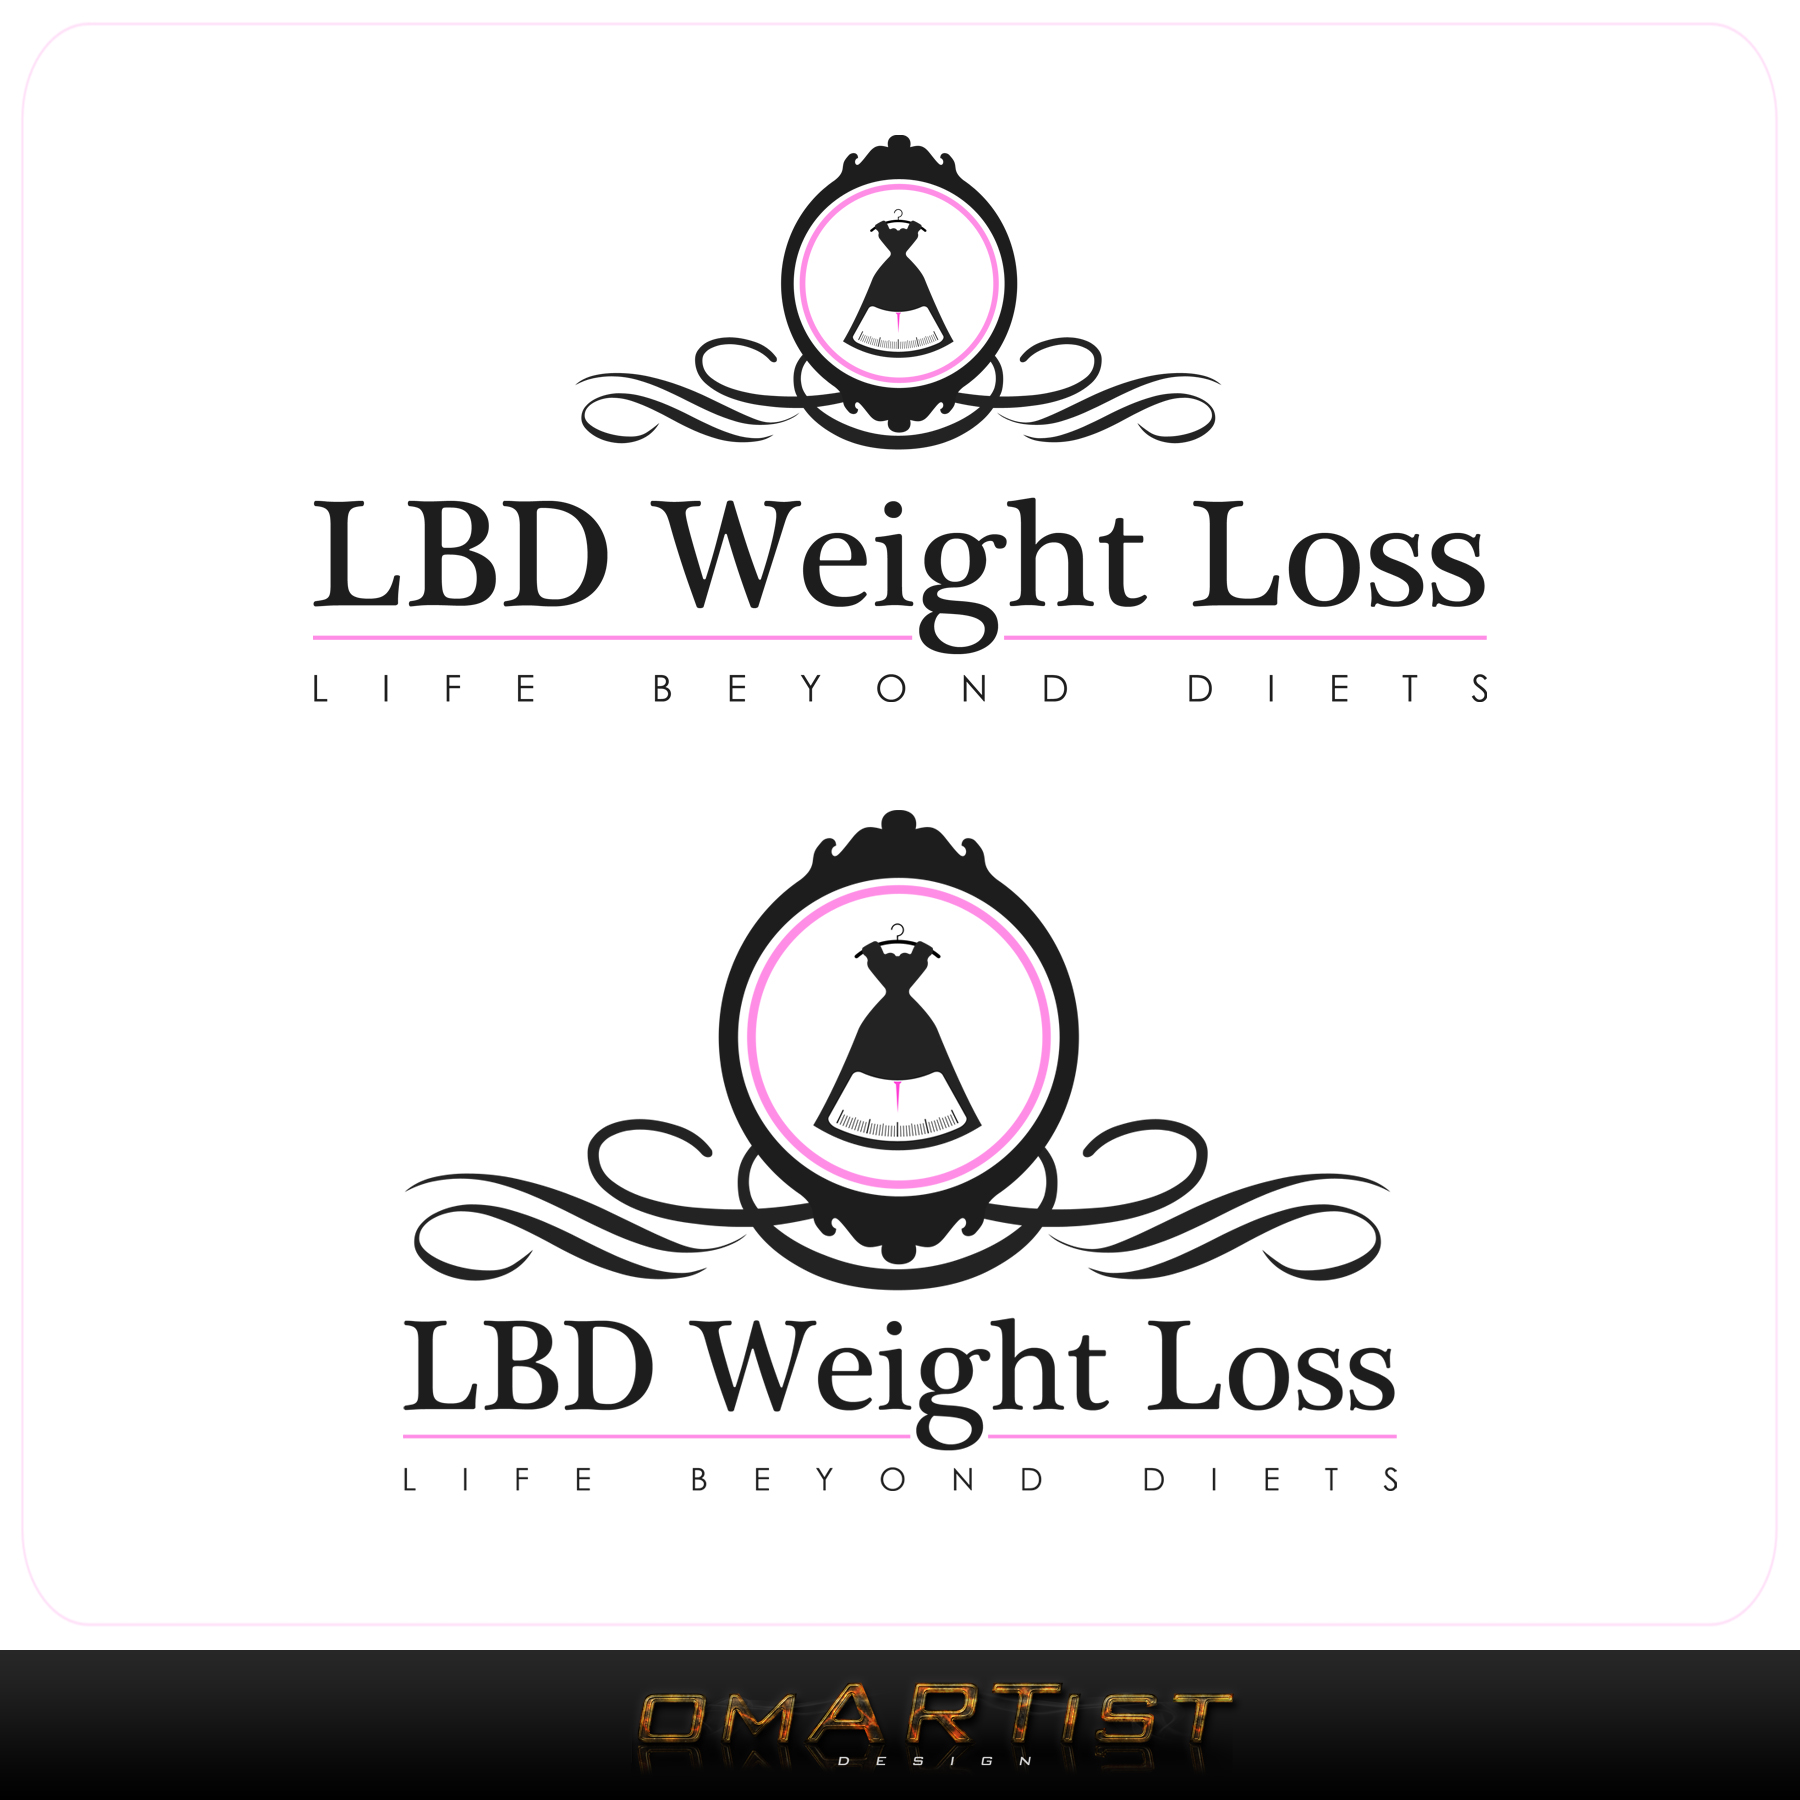 Logo Design by omARTist - Entry No. 66 in the Logo Design Contest Imaginative Logo Design for LBD Weight Loss.